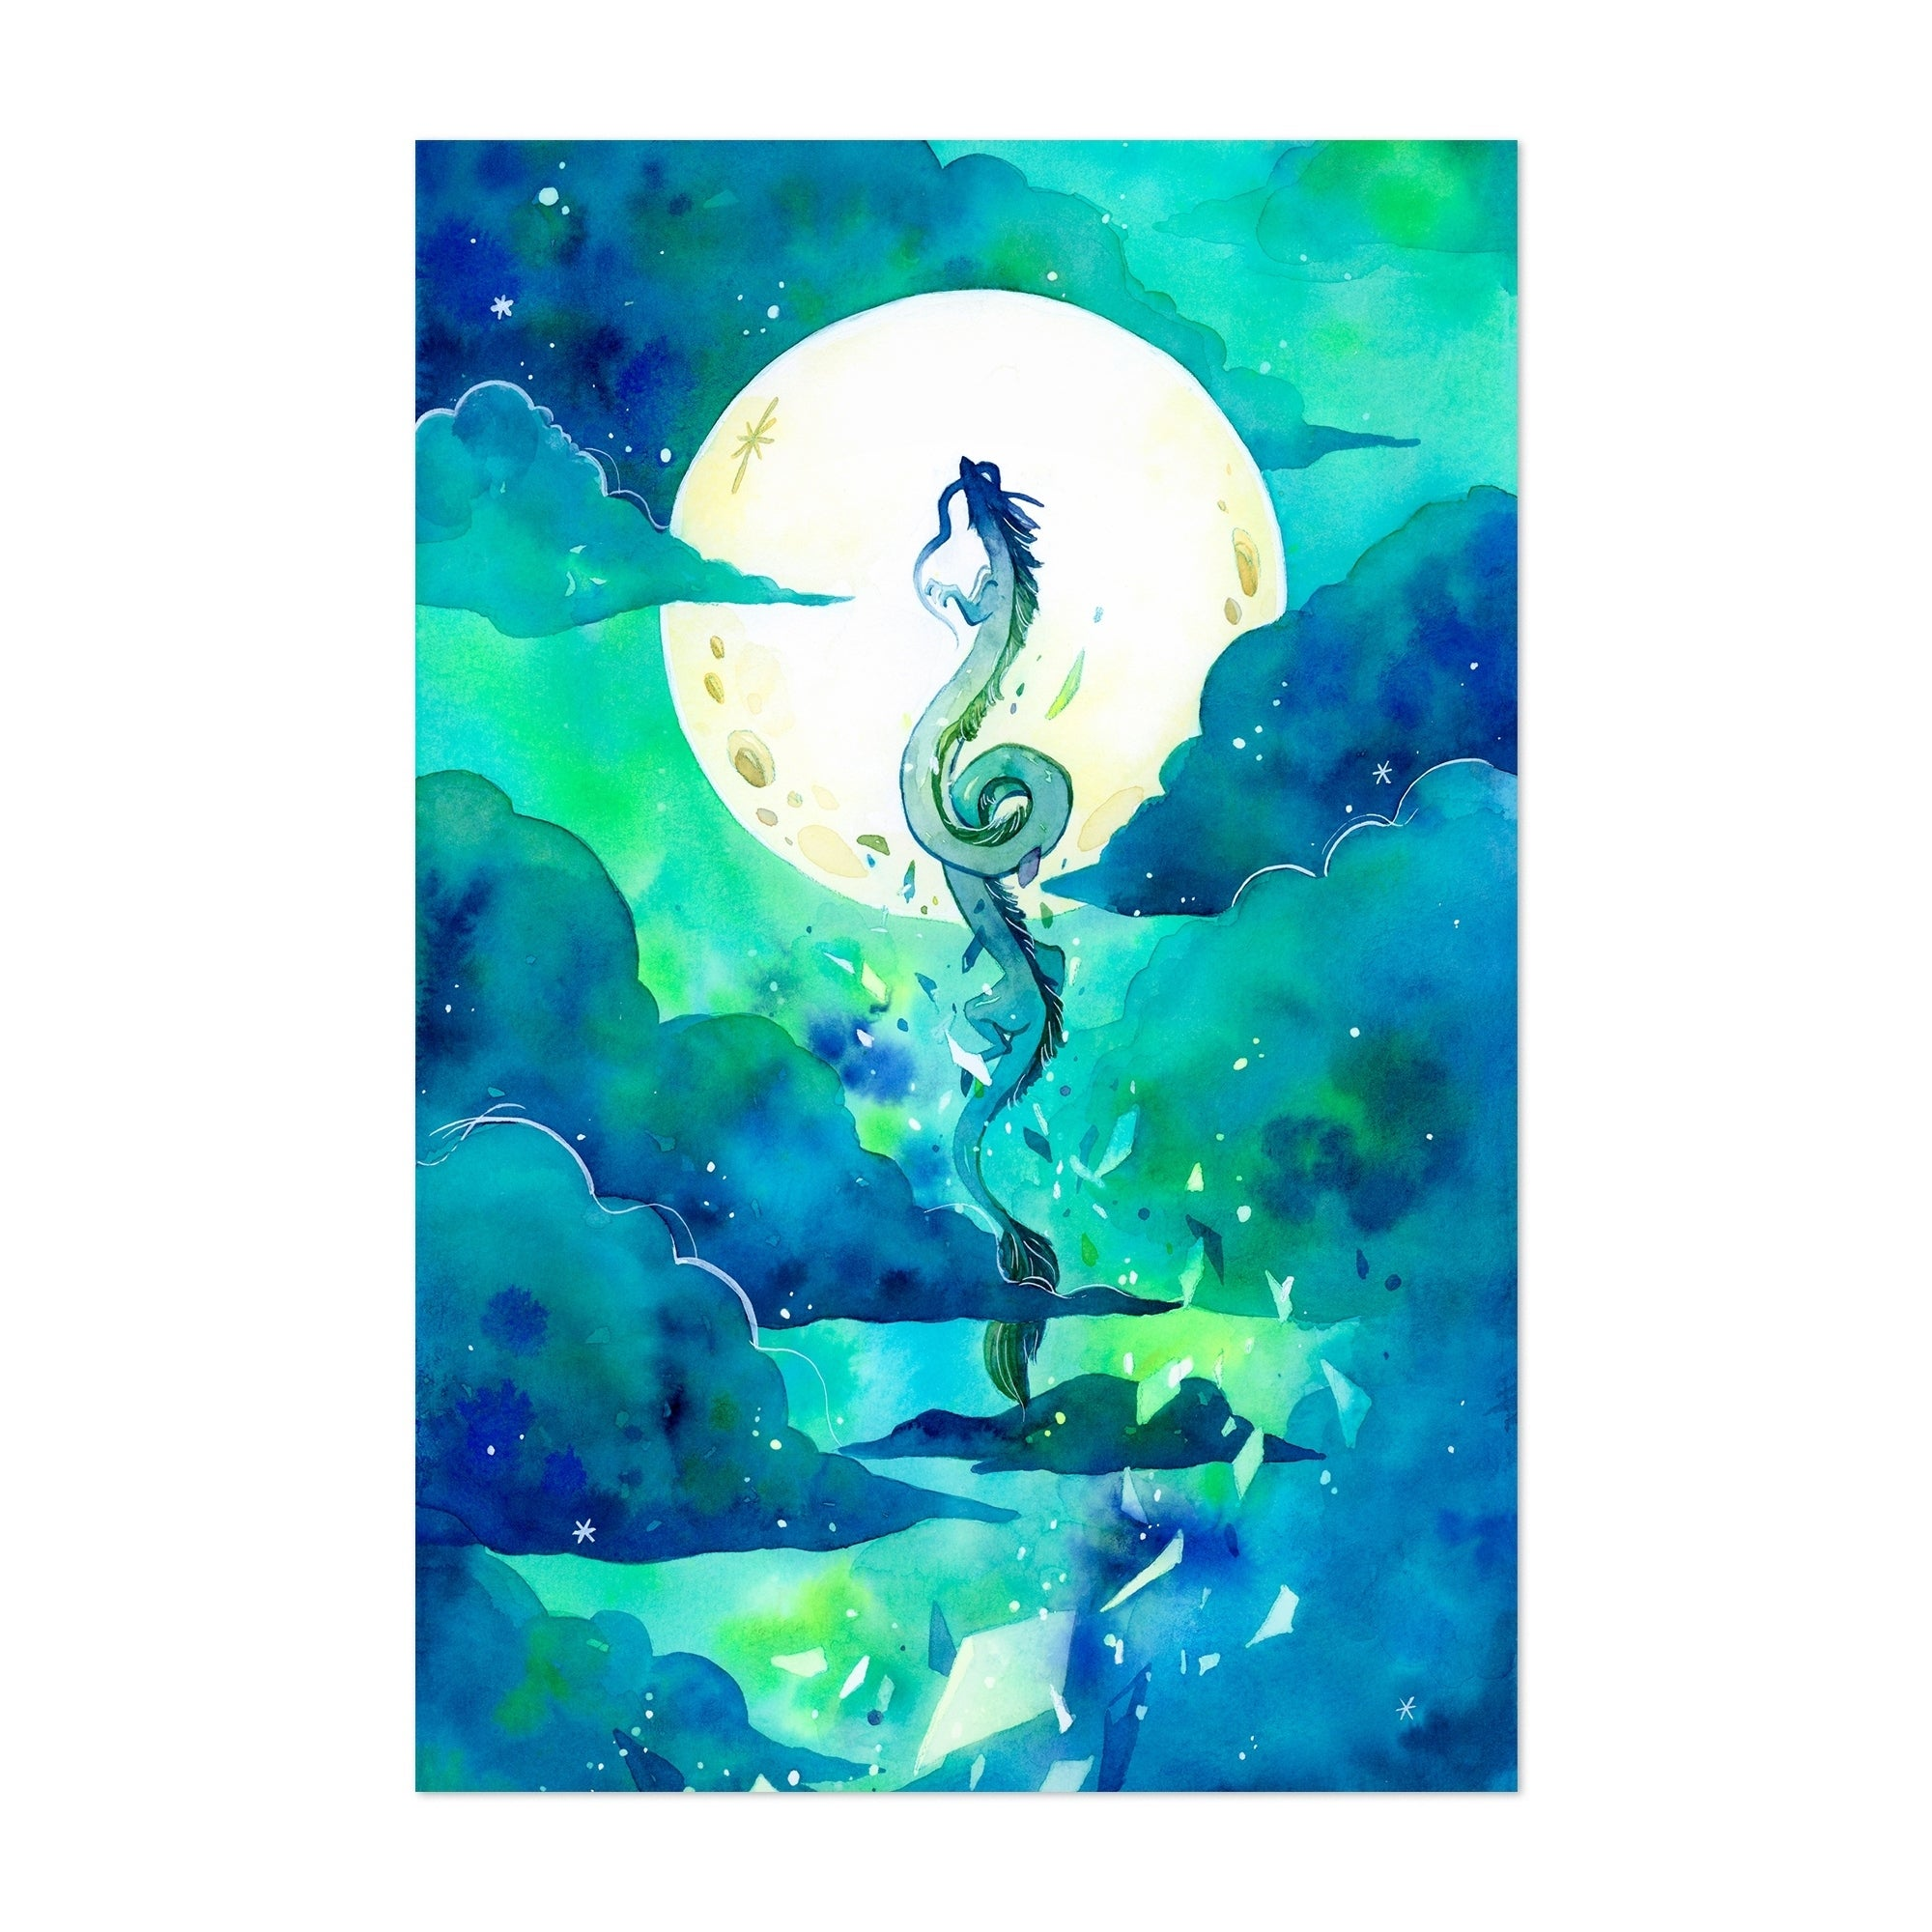 Shop Noir Gallery Flying Dragon Haku Spirited Away Unframed Art Print Poster Overstock 29361987